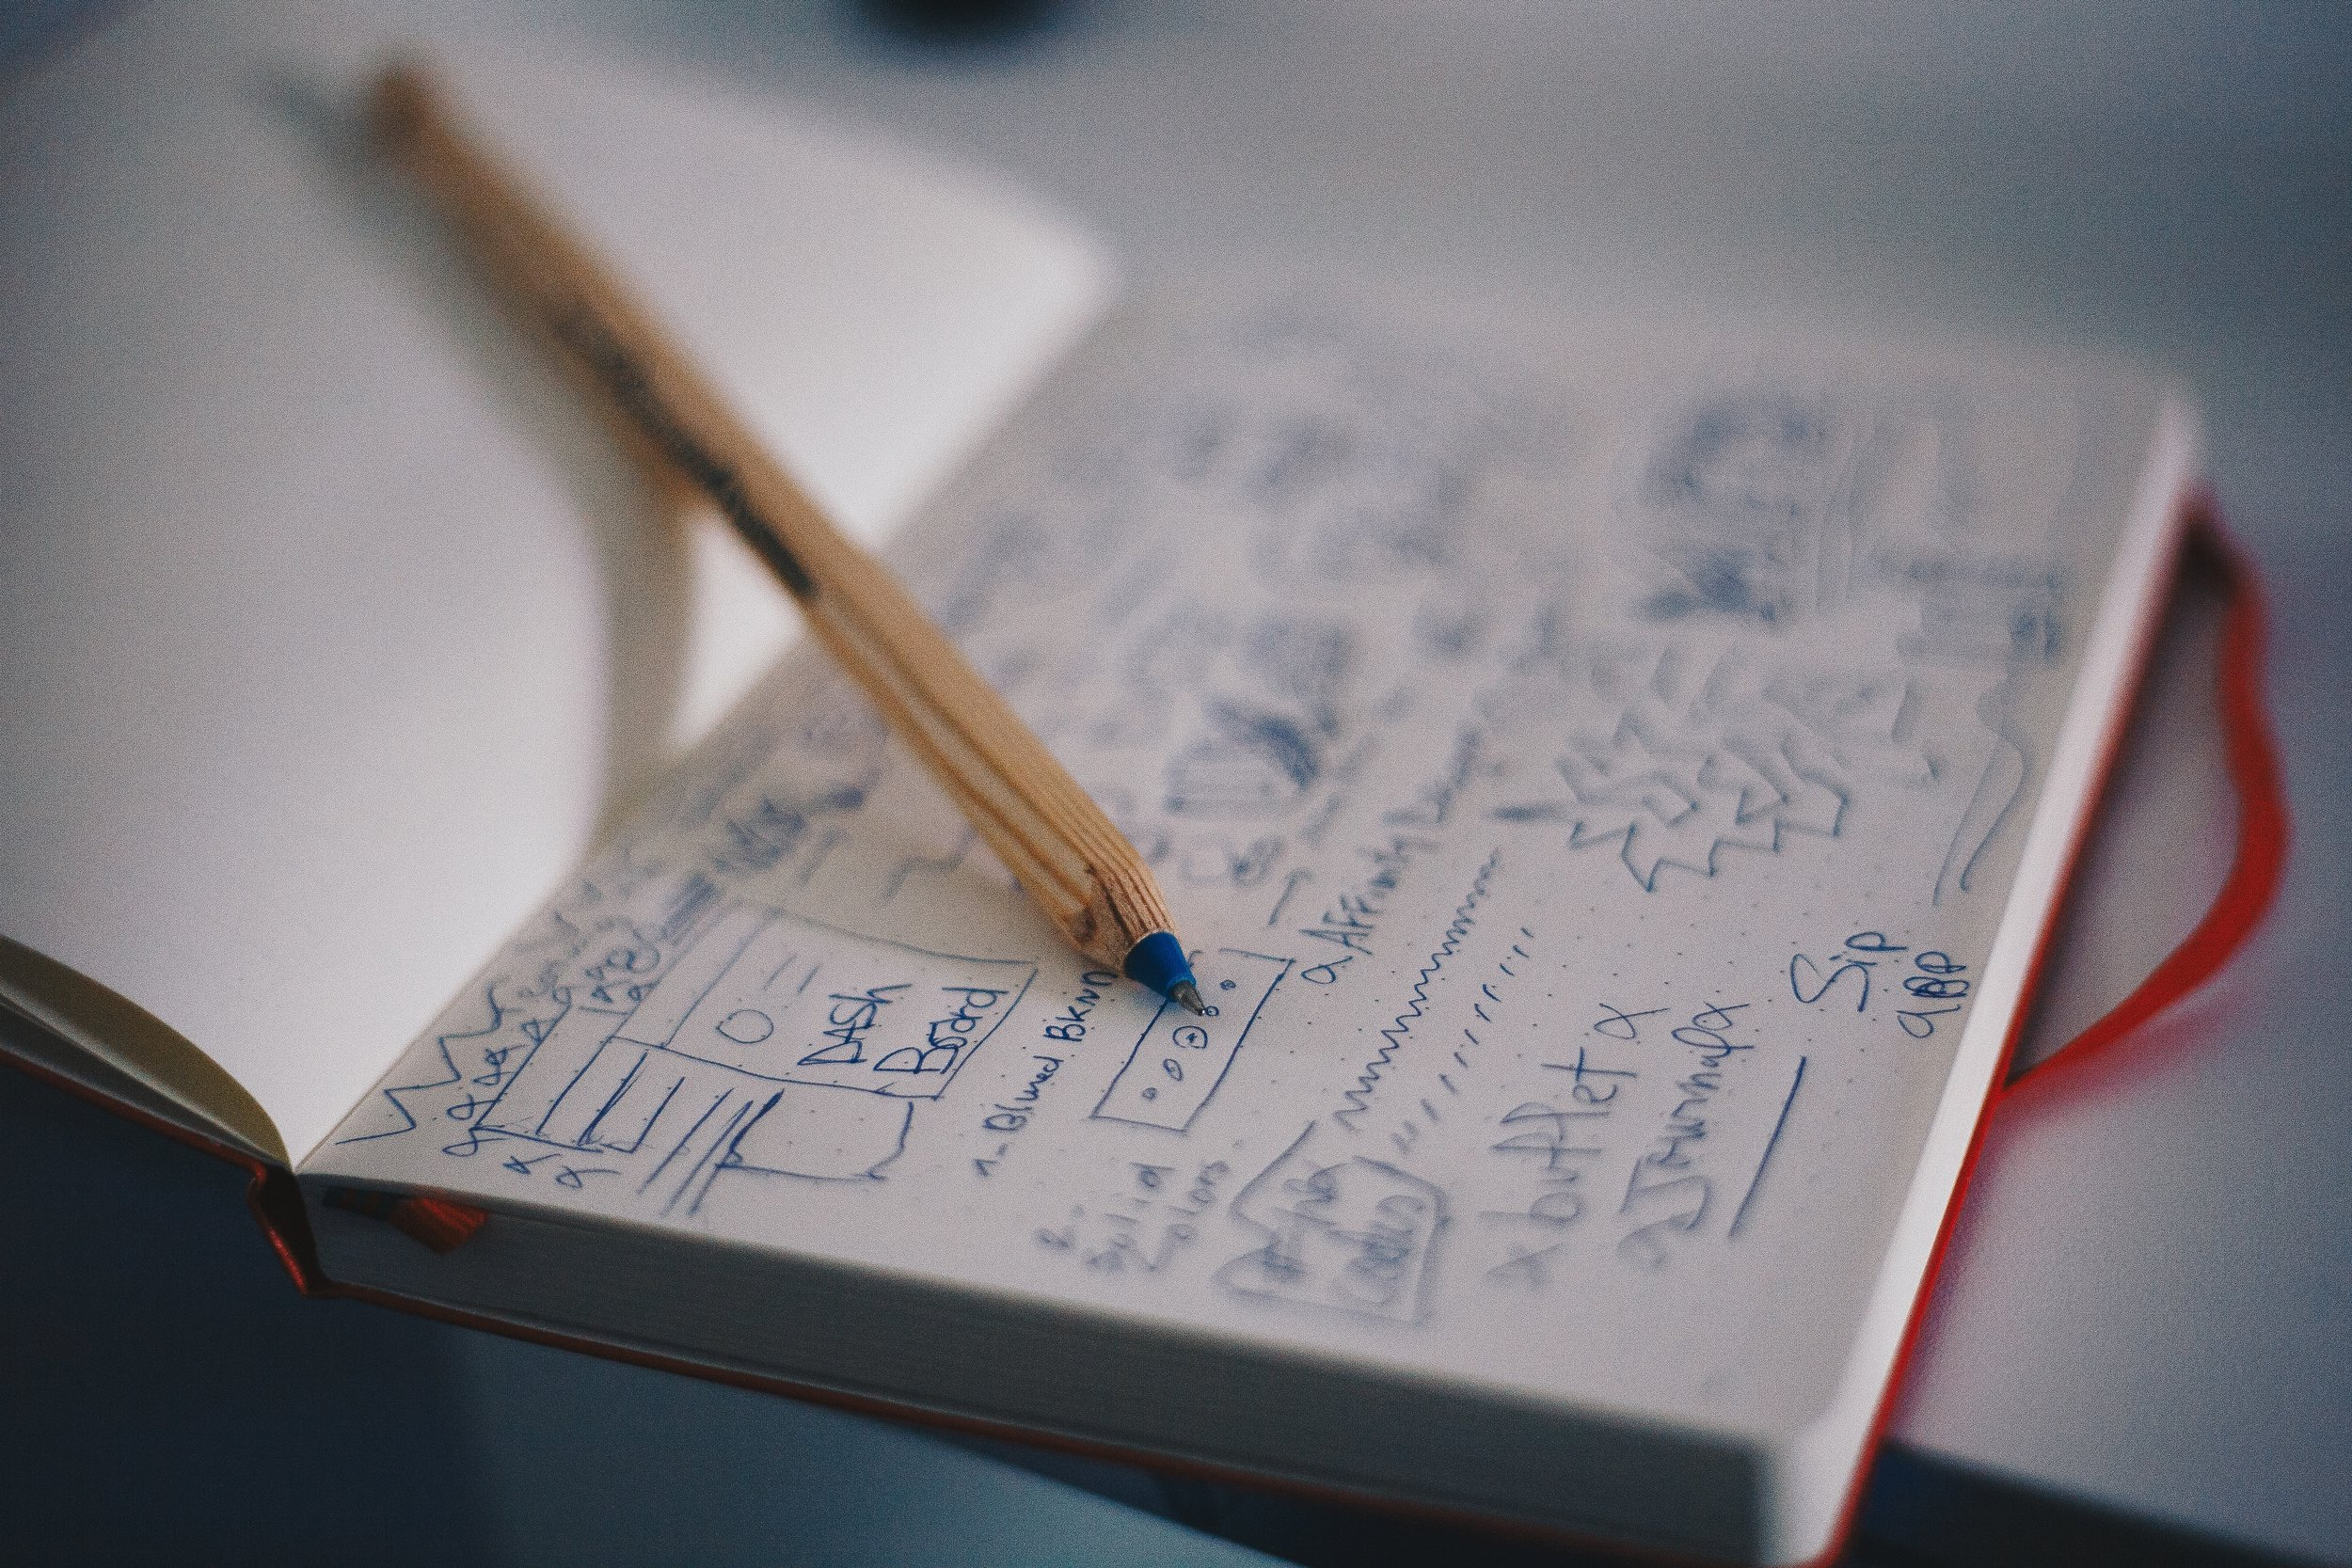 Business Planning Basics: What & Why? - Covering some foundational information about business planning.